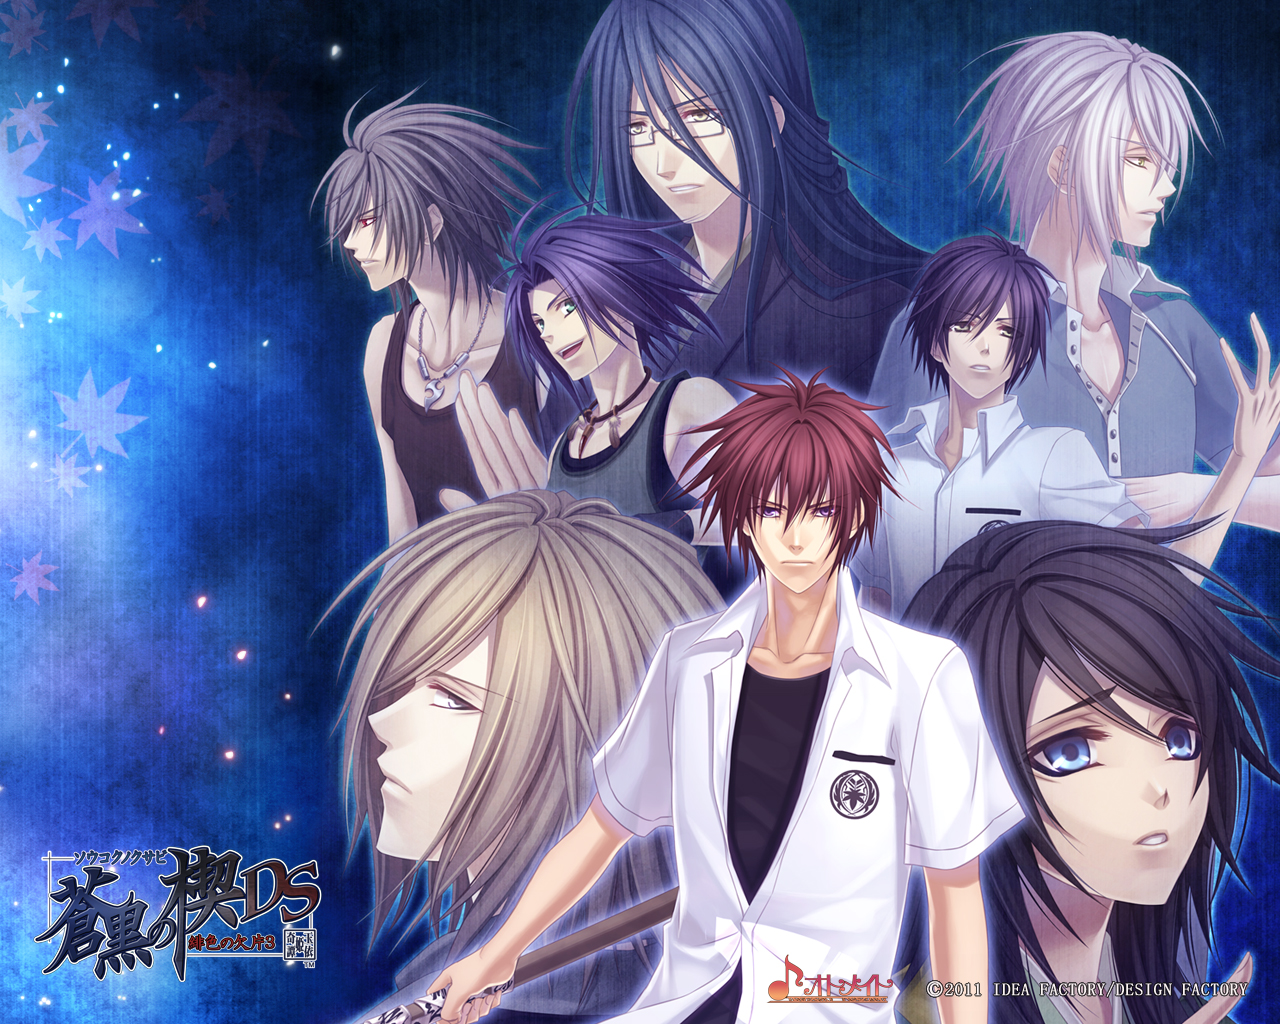 Hiiro no Kakera (Scarlet Fragments) Wallpaper #739417 ...